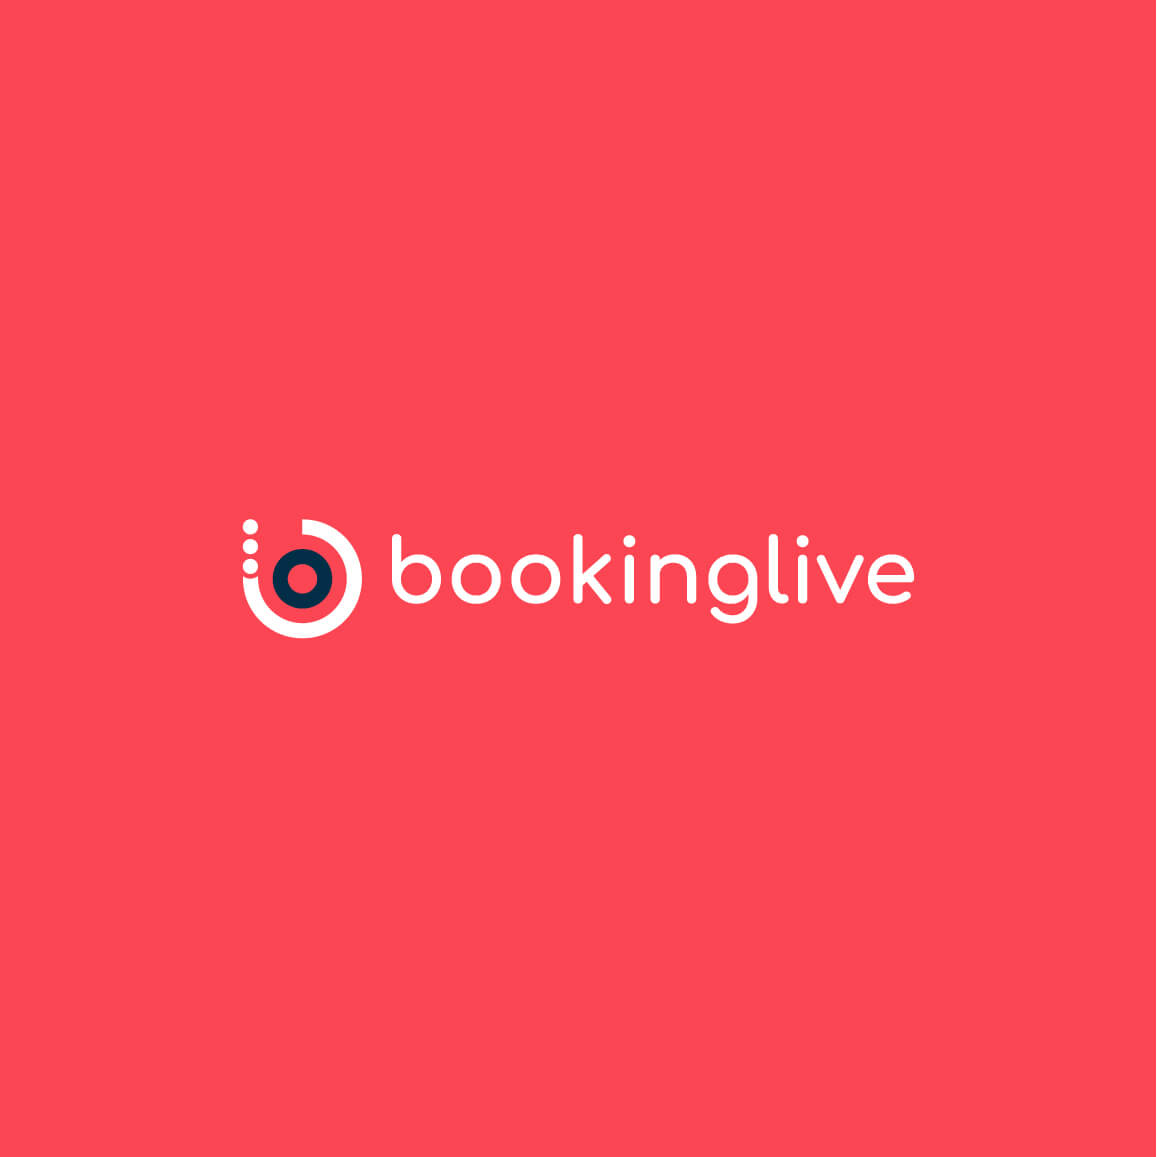 Serkan_Ferah_Branding_Pitching_Design_London_Bookinglive-Case-Study.jpg